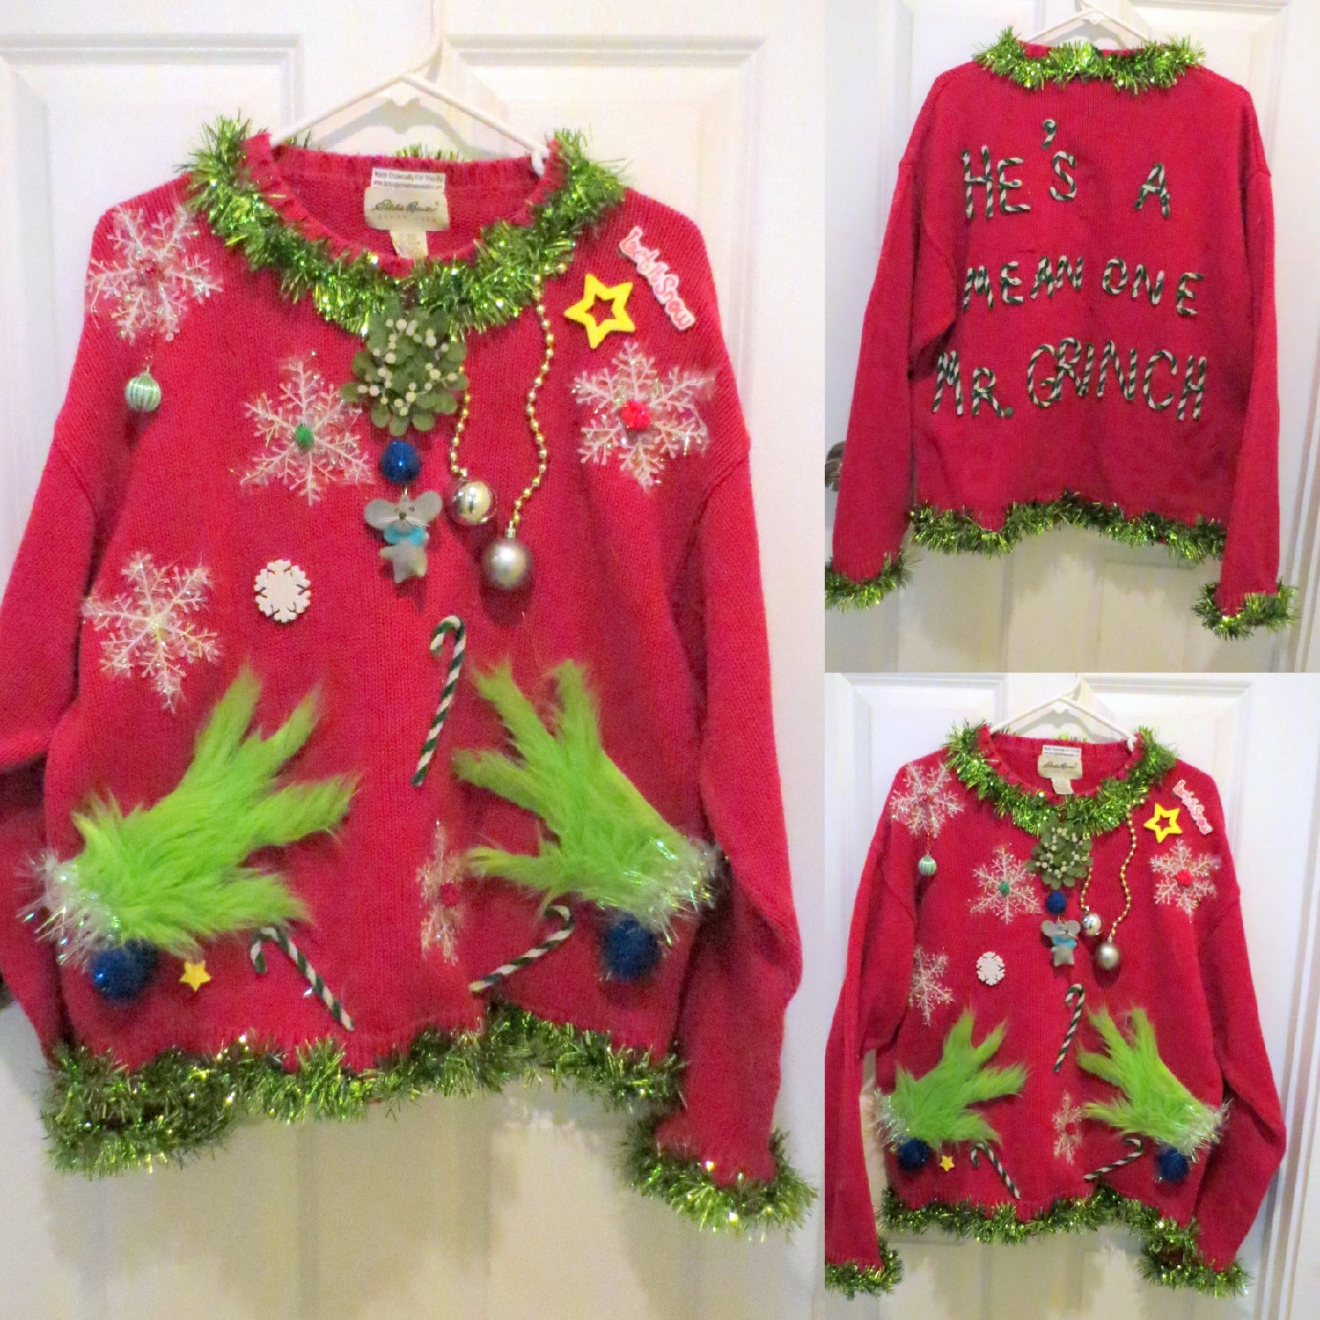 They just might not get any uglier than this sweater - and we mean that in the nicest way. This specific sweater is $68 and is handmade by the folks at Tacky Ugly Christmas Etsy shop. (Image: Facebook.com/Tackyuglychristmassweaters/)